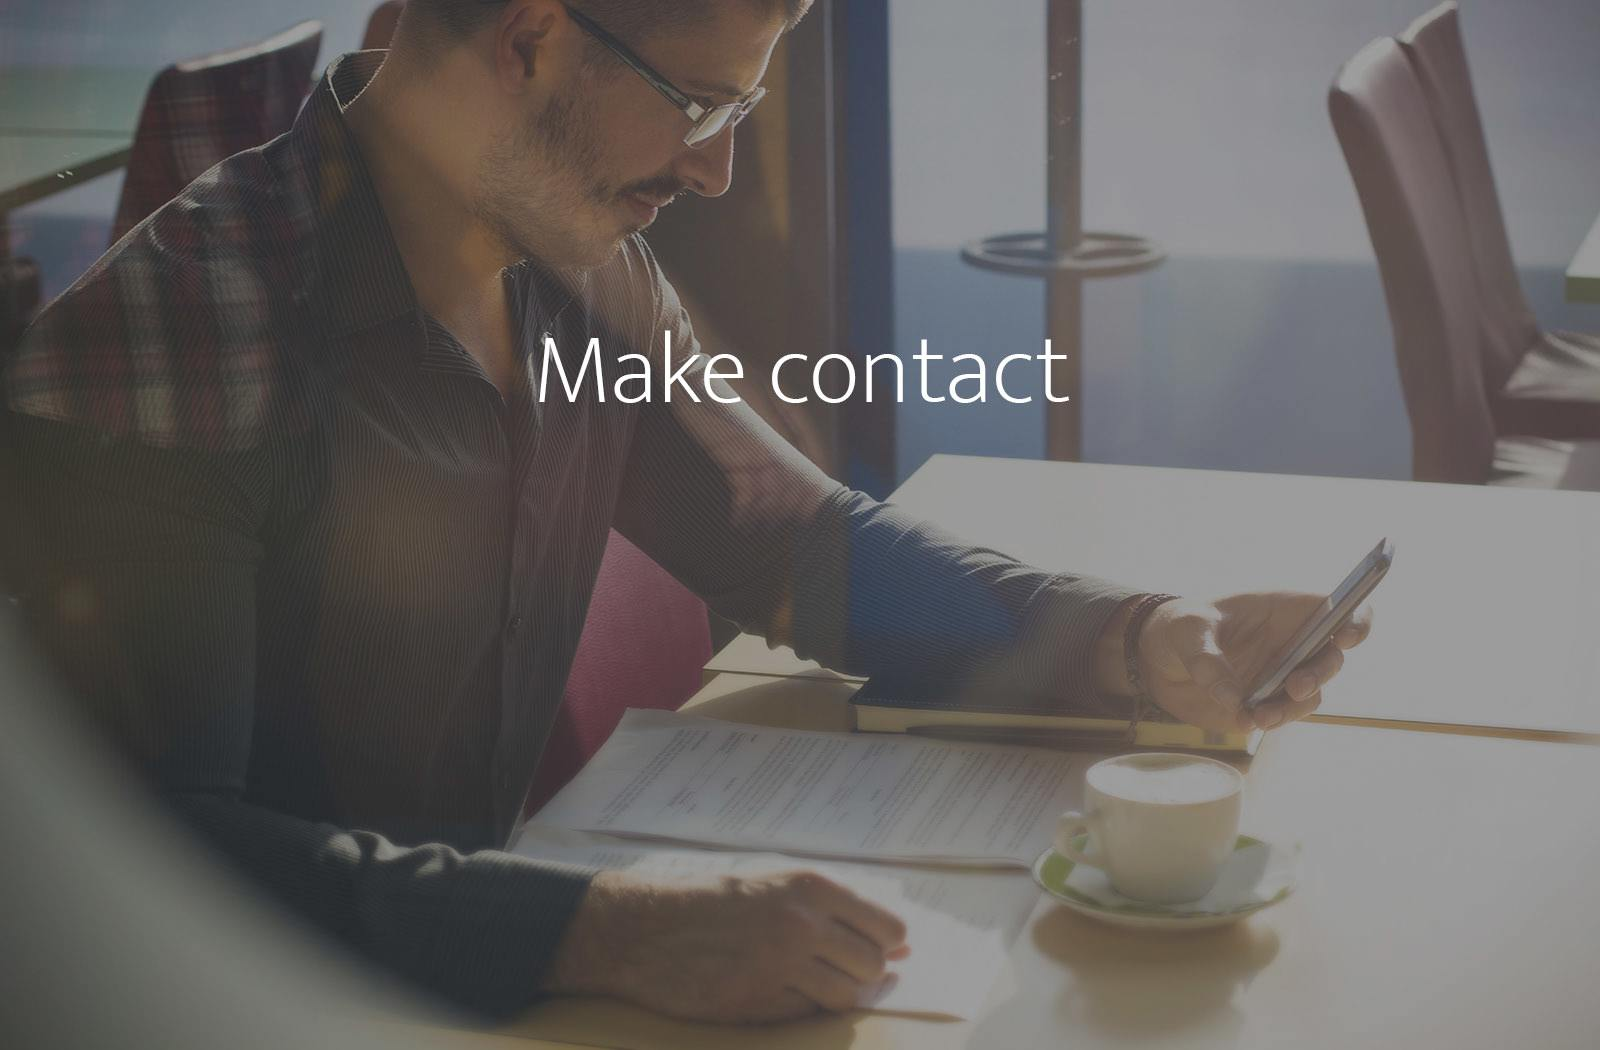 Make contact with bfpeople